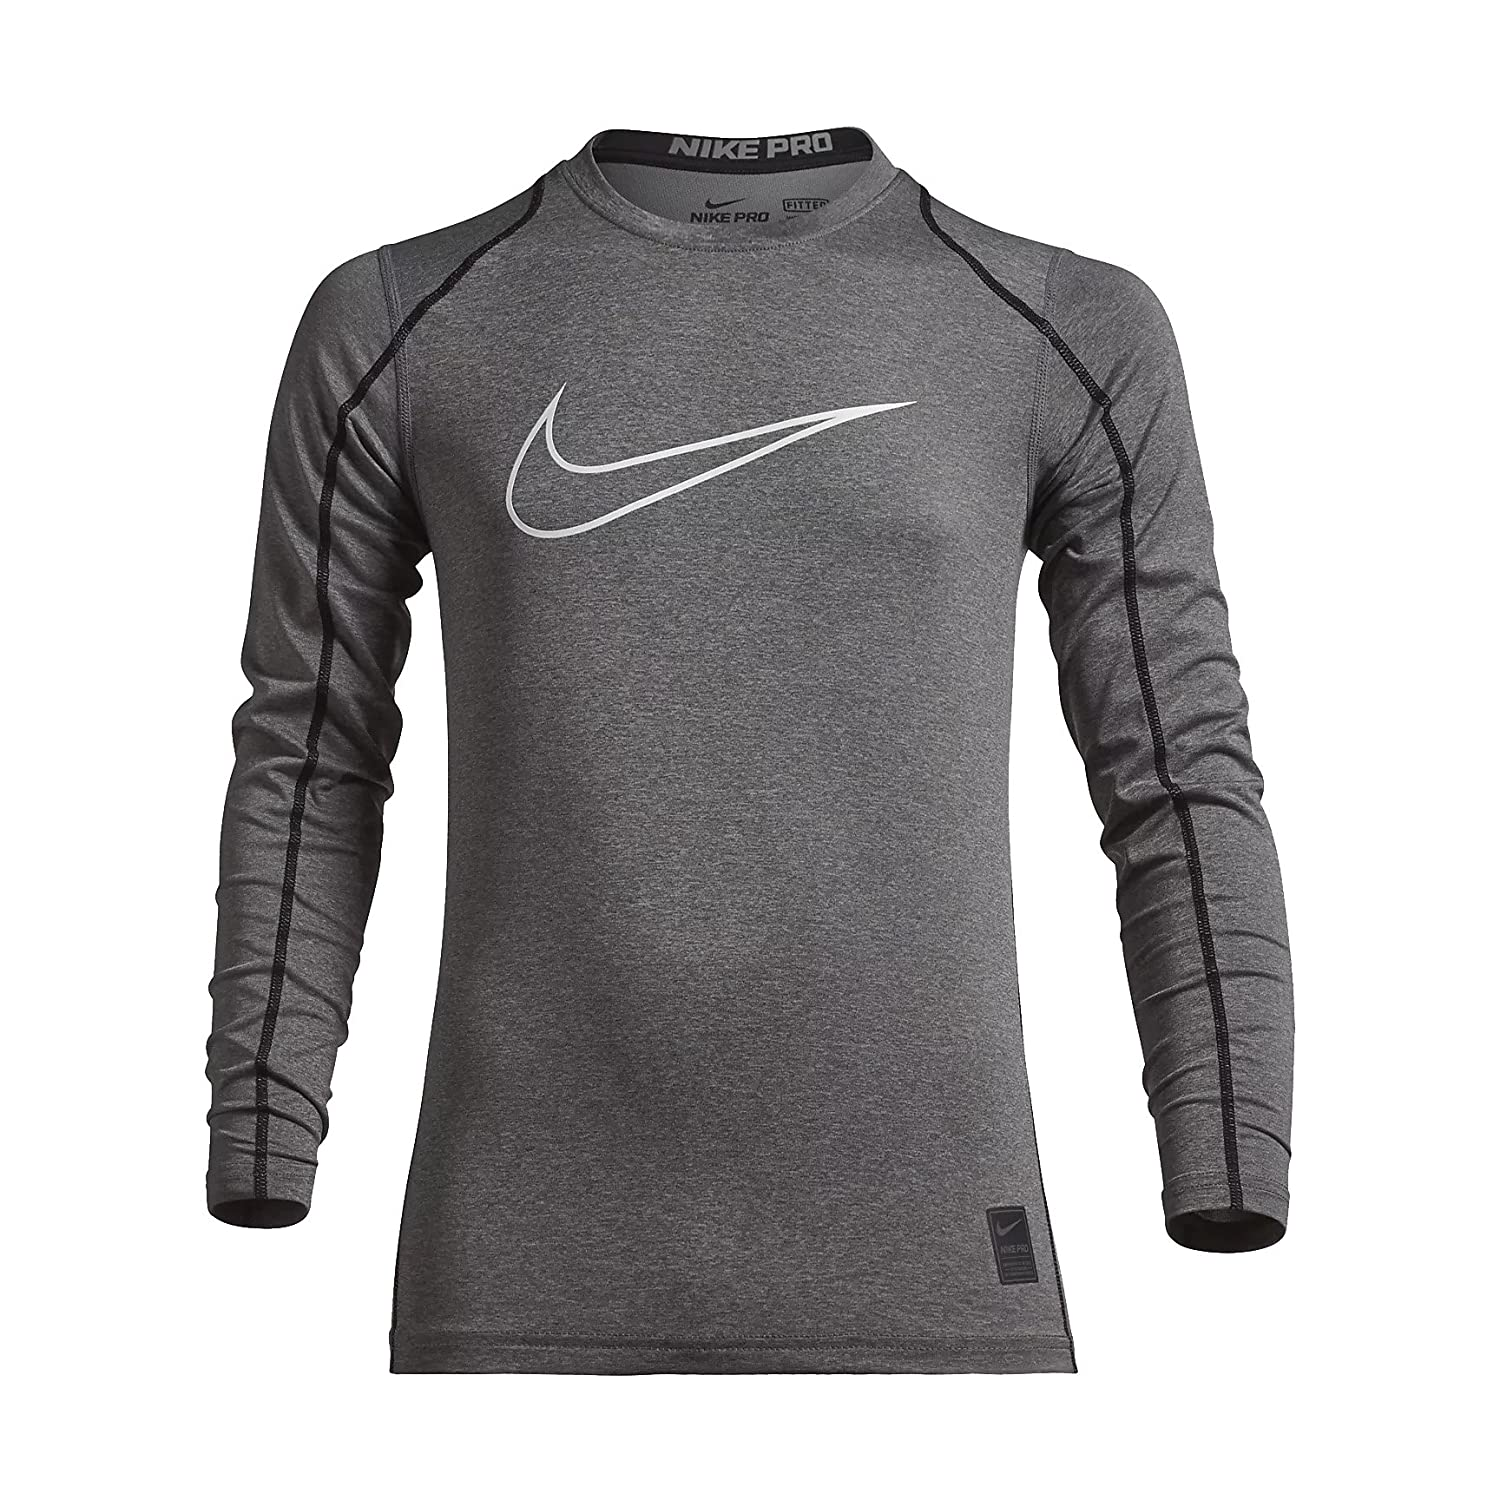 the best attitude 7a060 5e371 Nike Pro Cool fabric provides a sweat-wicking baselayer to help you feel  cool. Stretch-mesh back insert for ventilation. Flat seams move smoothly  against ...